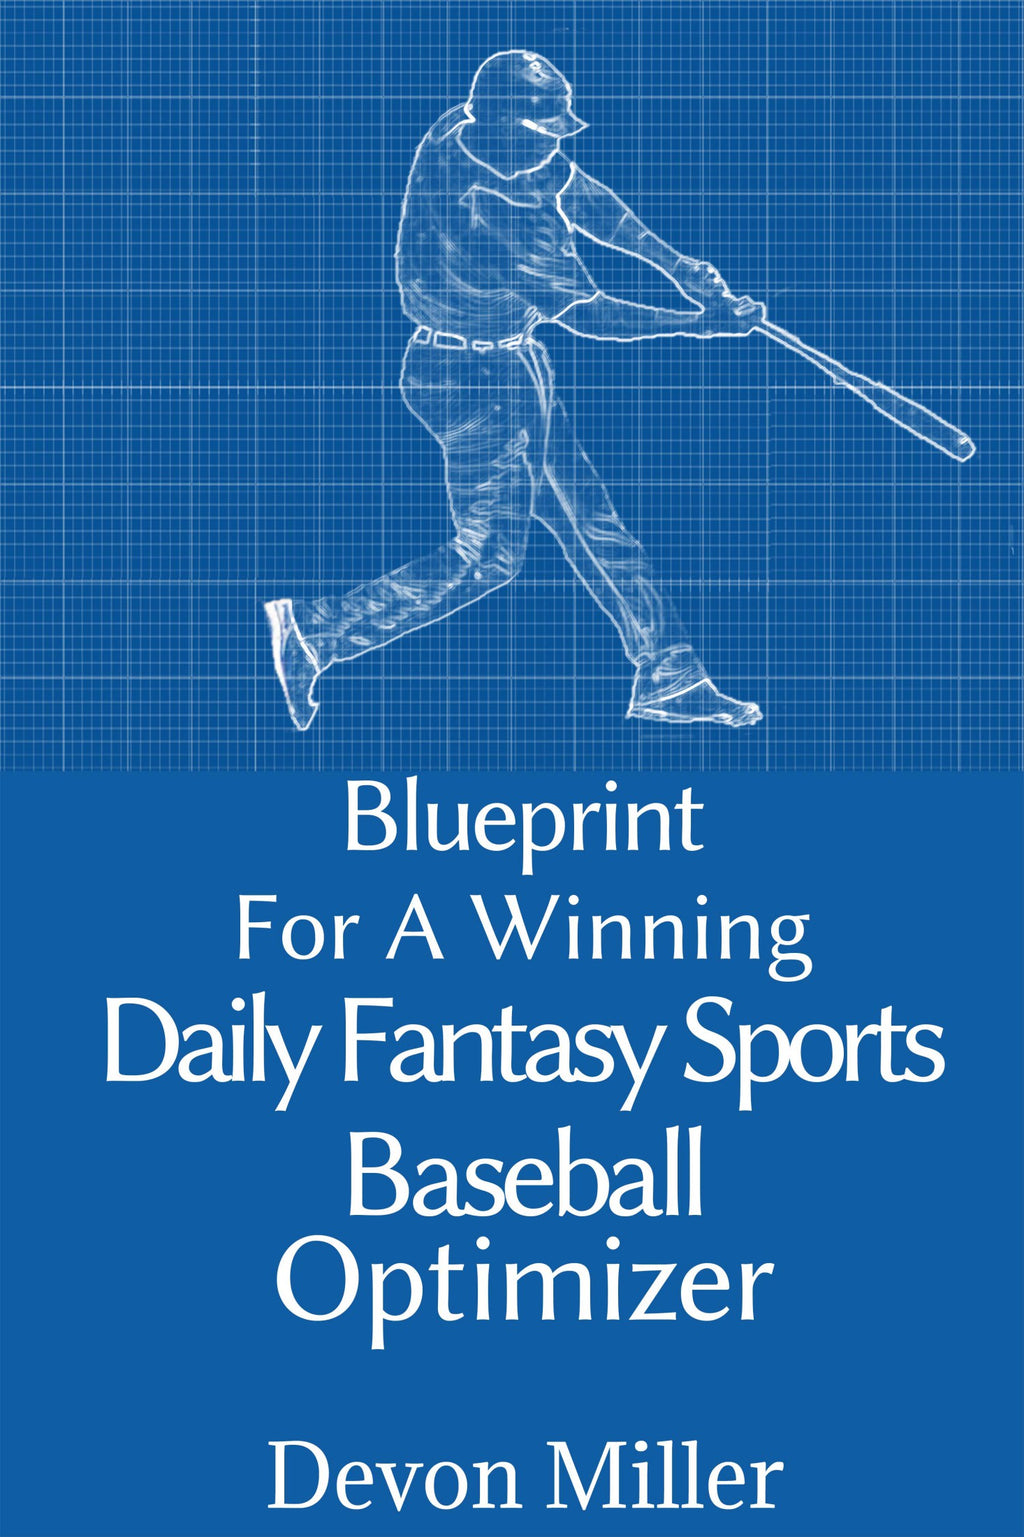 Daily Fantasy Sports Baseball Optimizer